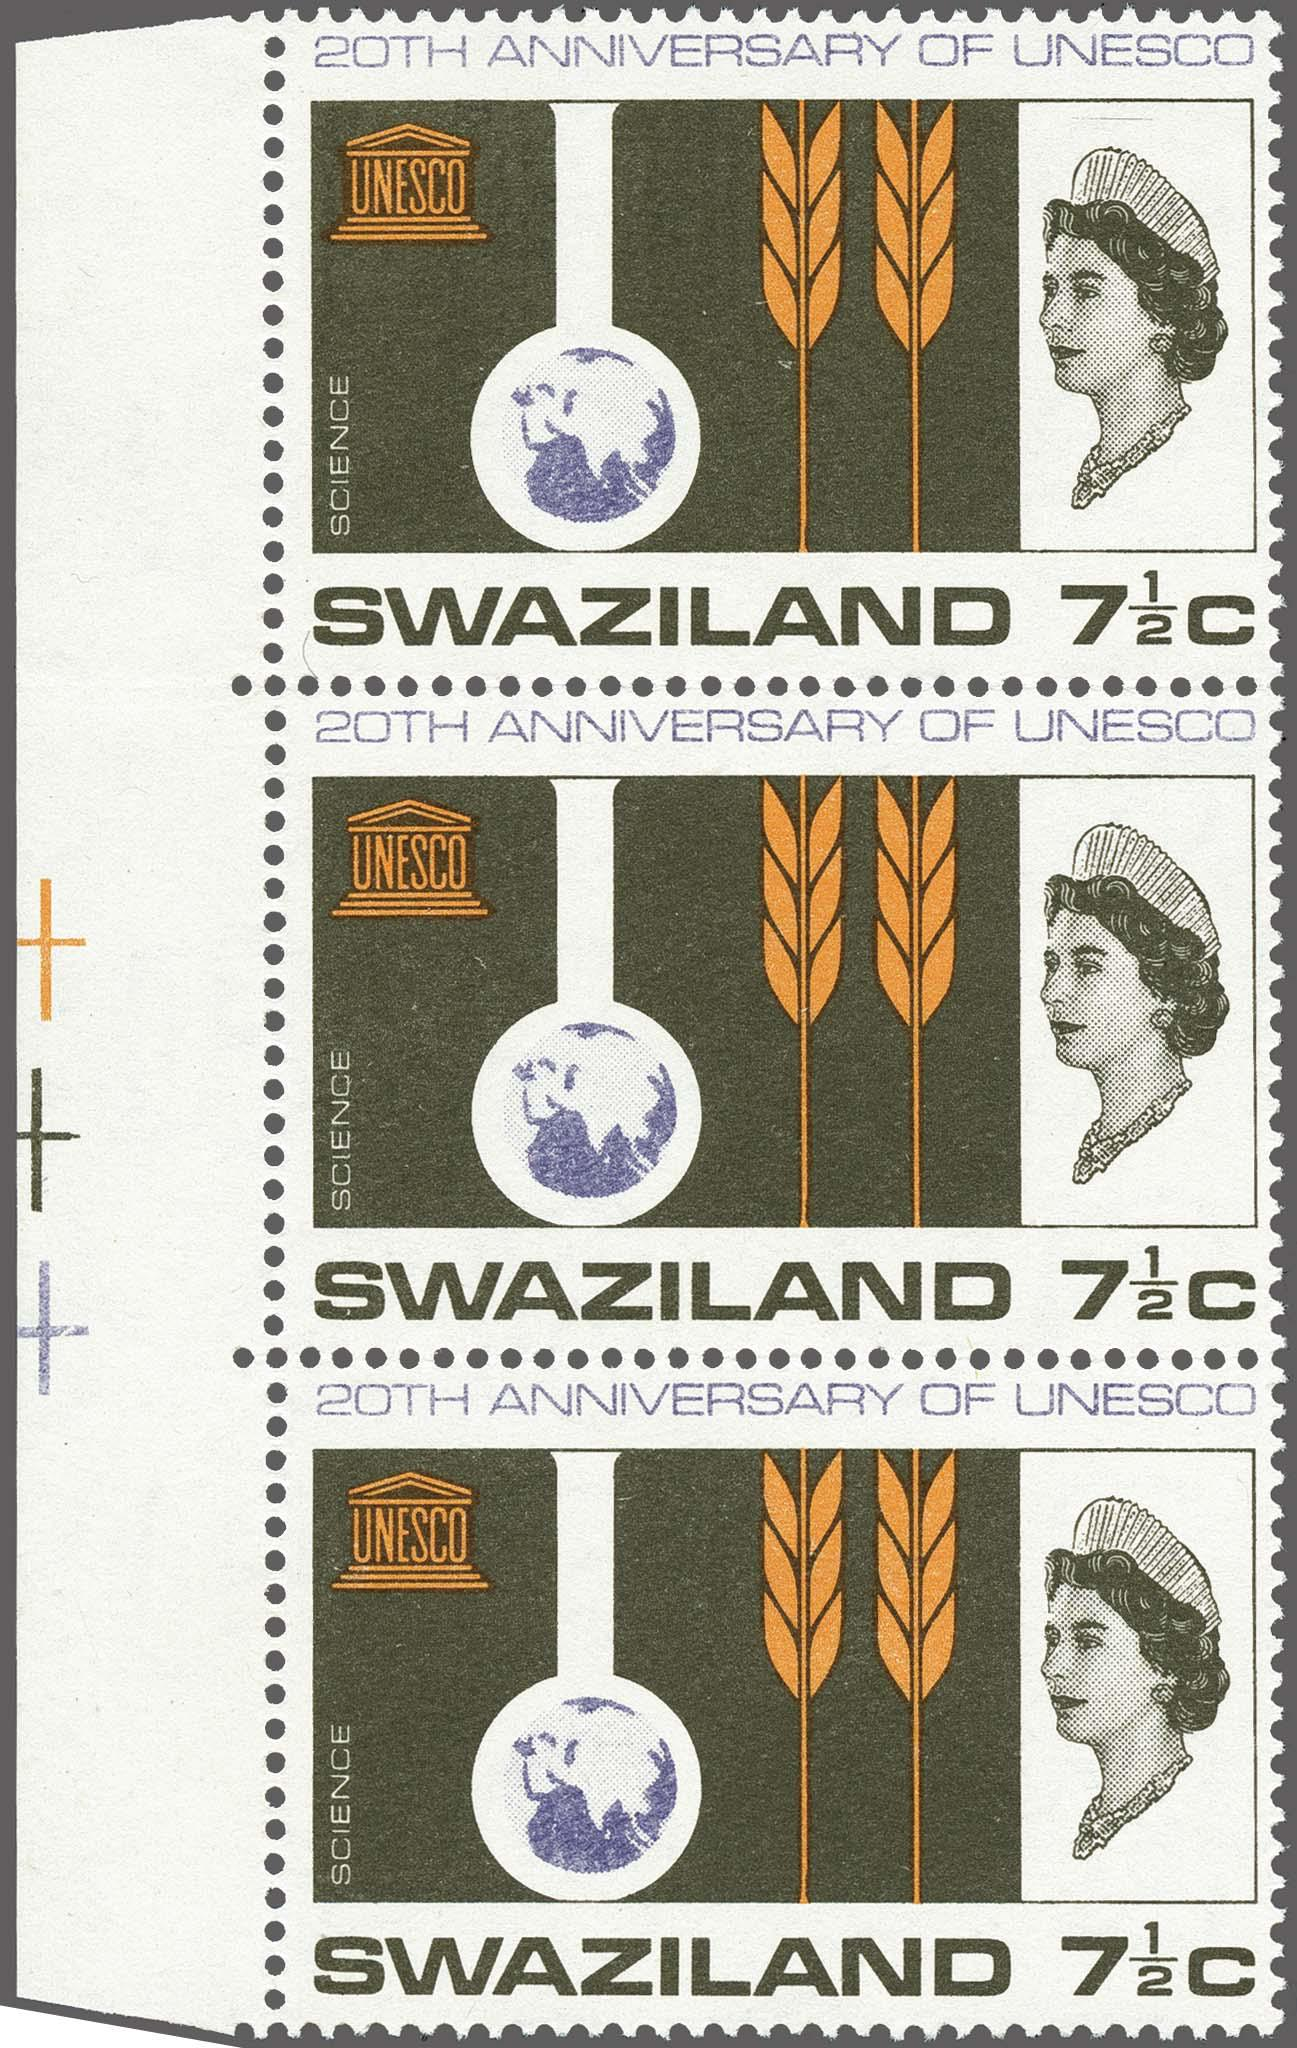 Lot 190 - Great Britain and former colonies swaziland -  Corinphila Veilingen Auction 250-253 - Day 1 - Foreign countries